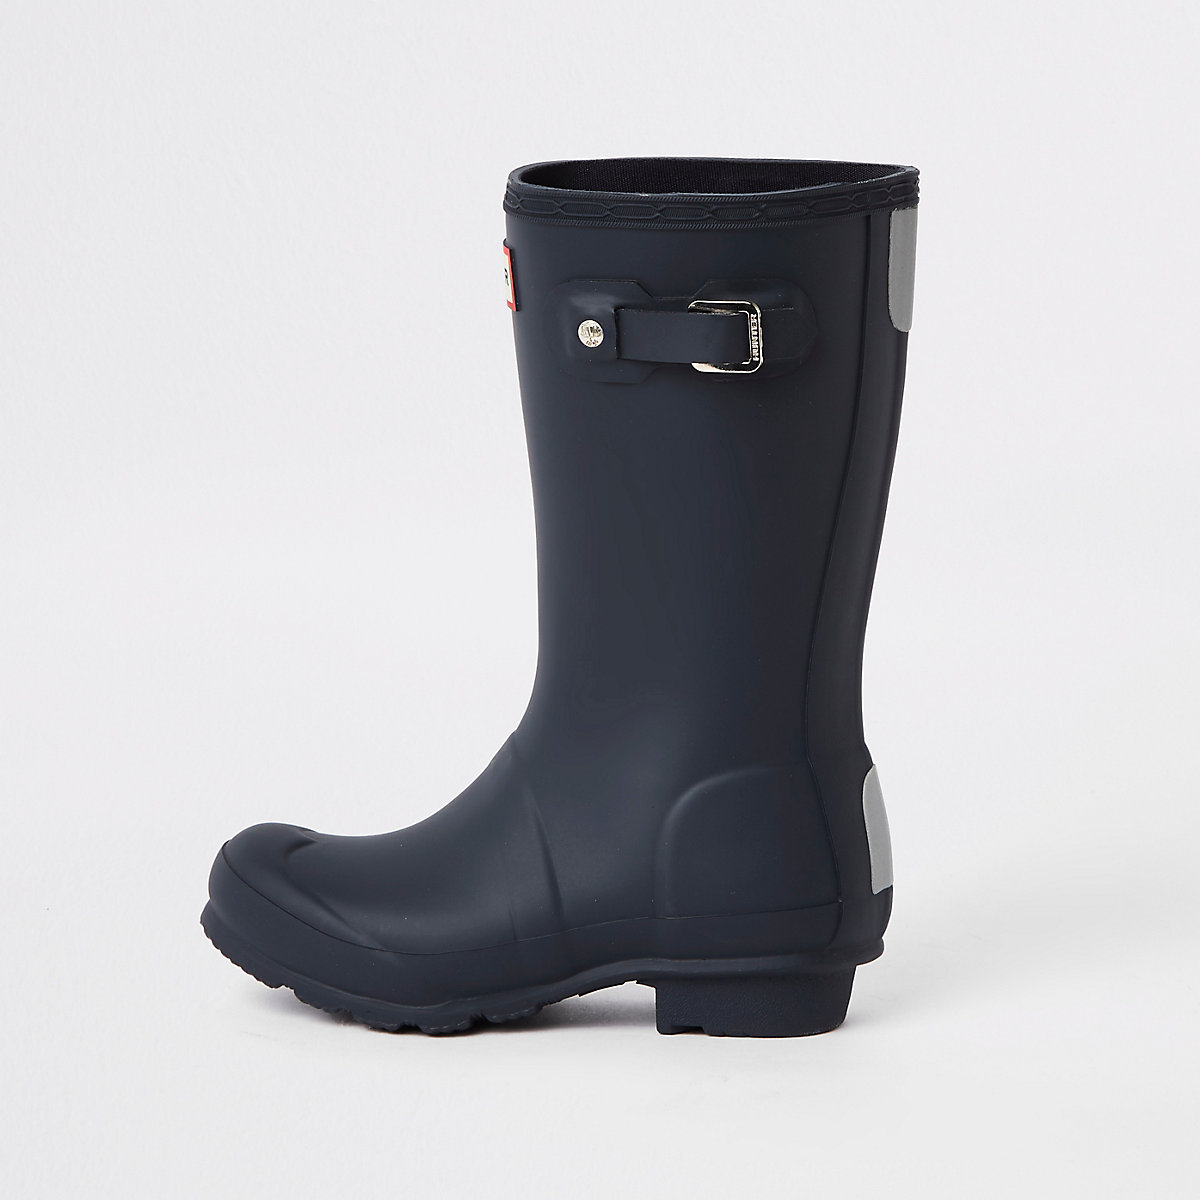 Kids Hunter Original navy wellington boots